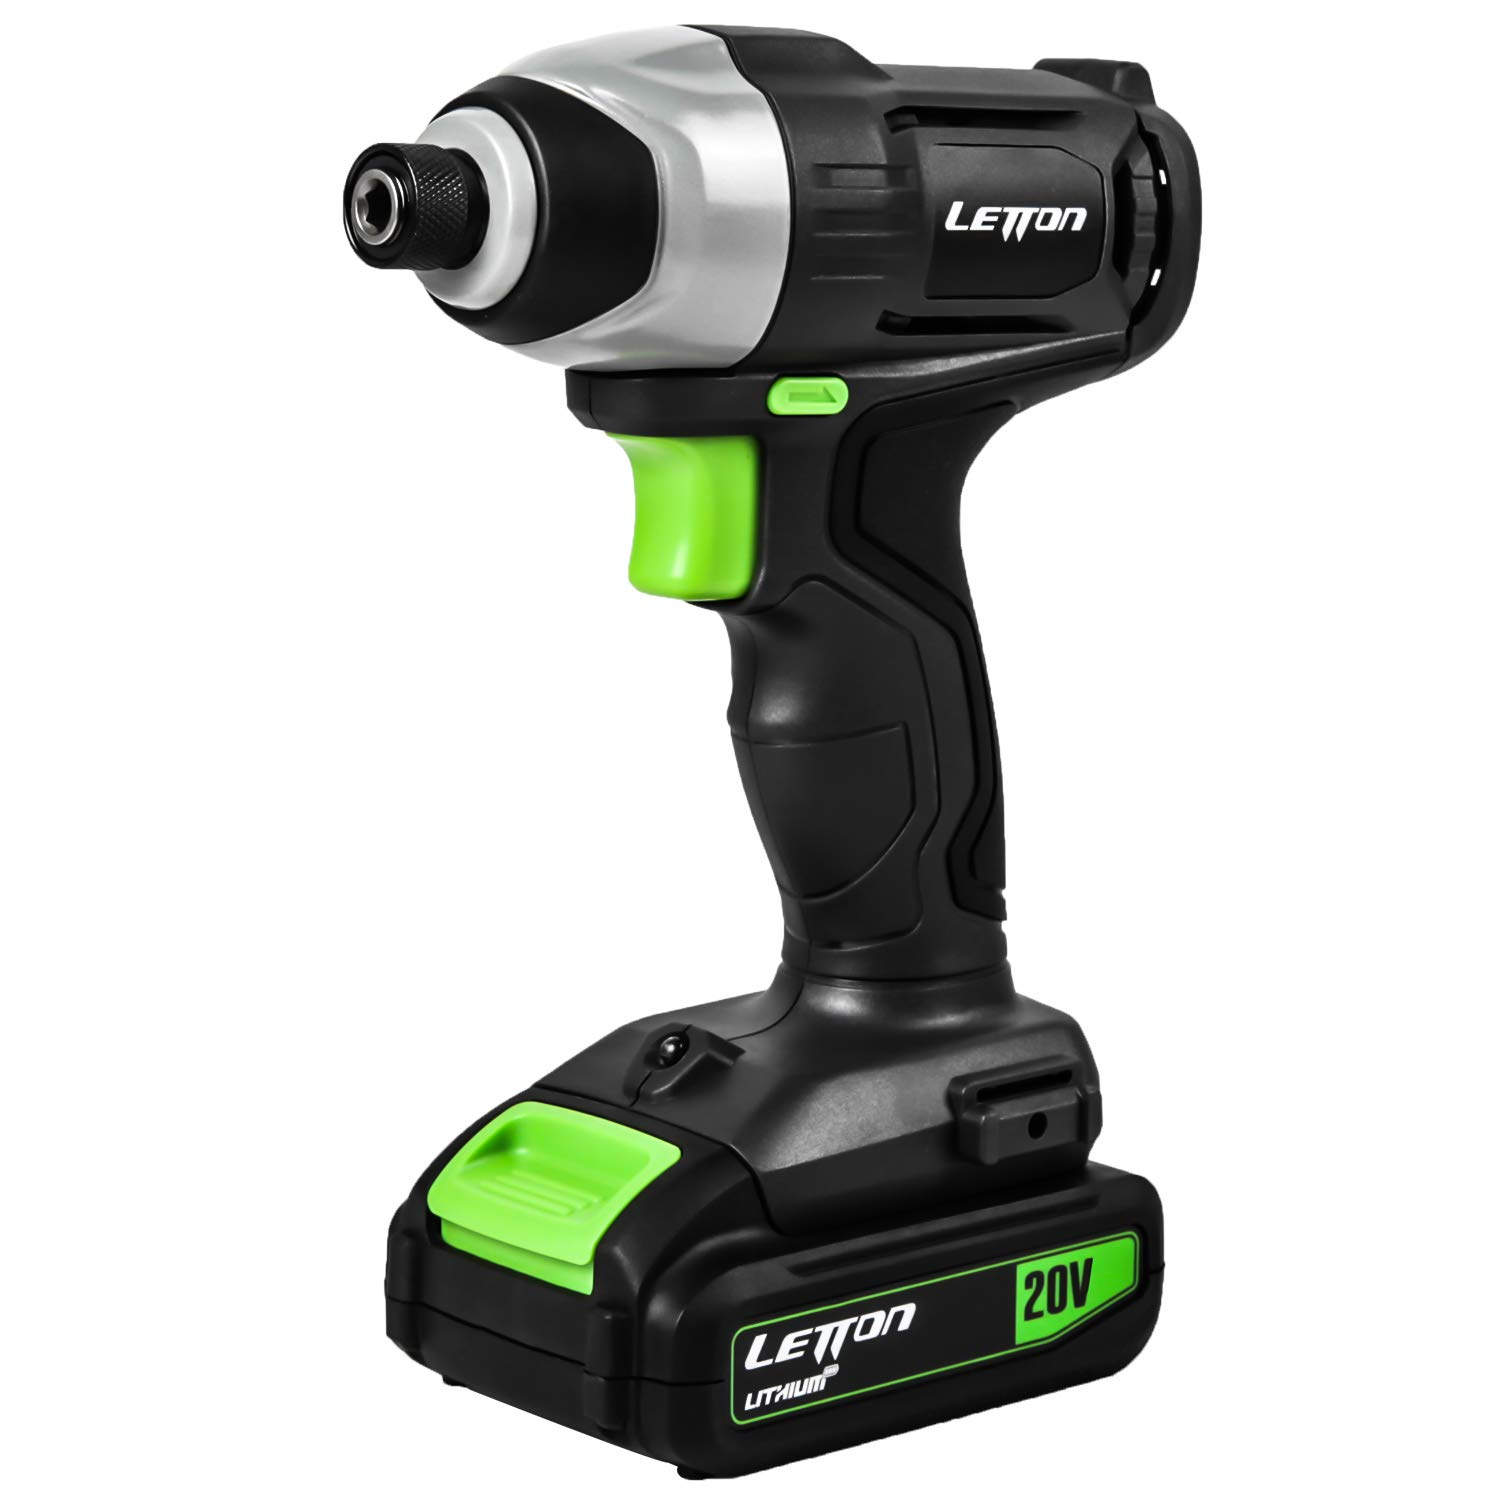 LETTON 20V Cordless Impact Driver MAX Lithium with Variable Speed 0-2800 RPM for Home Improvement and DIY Project